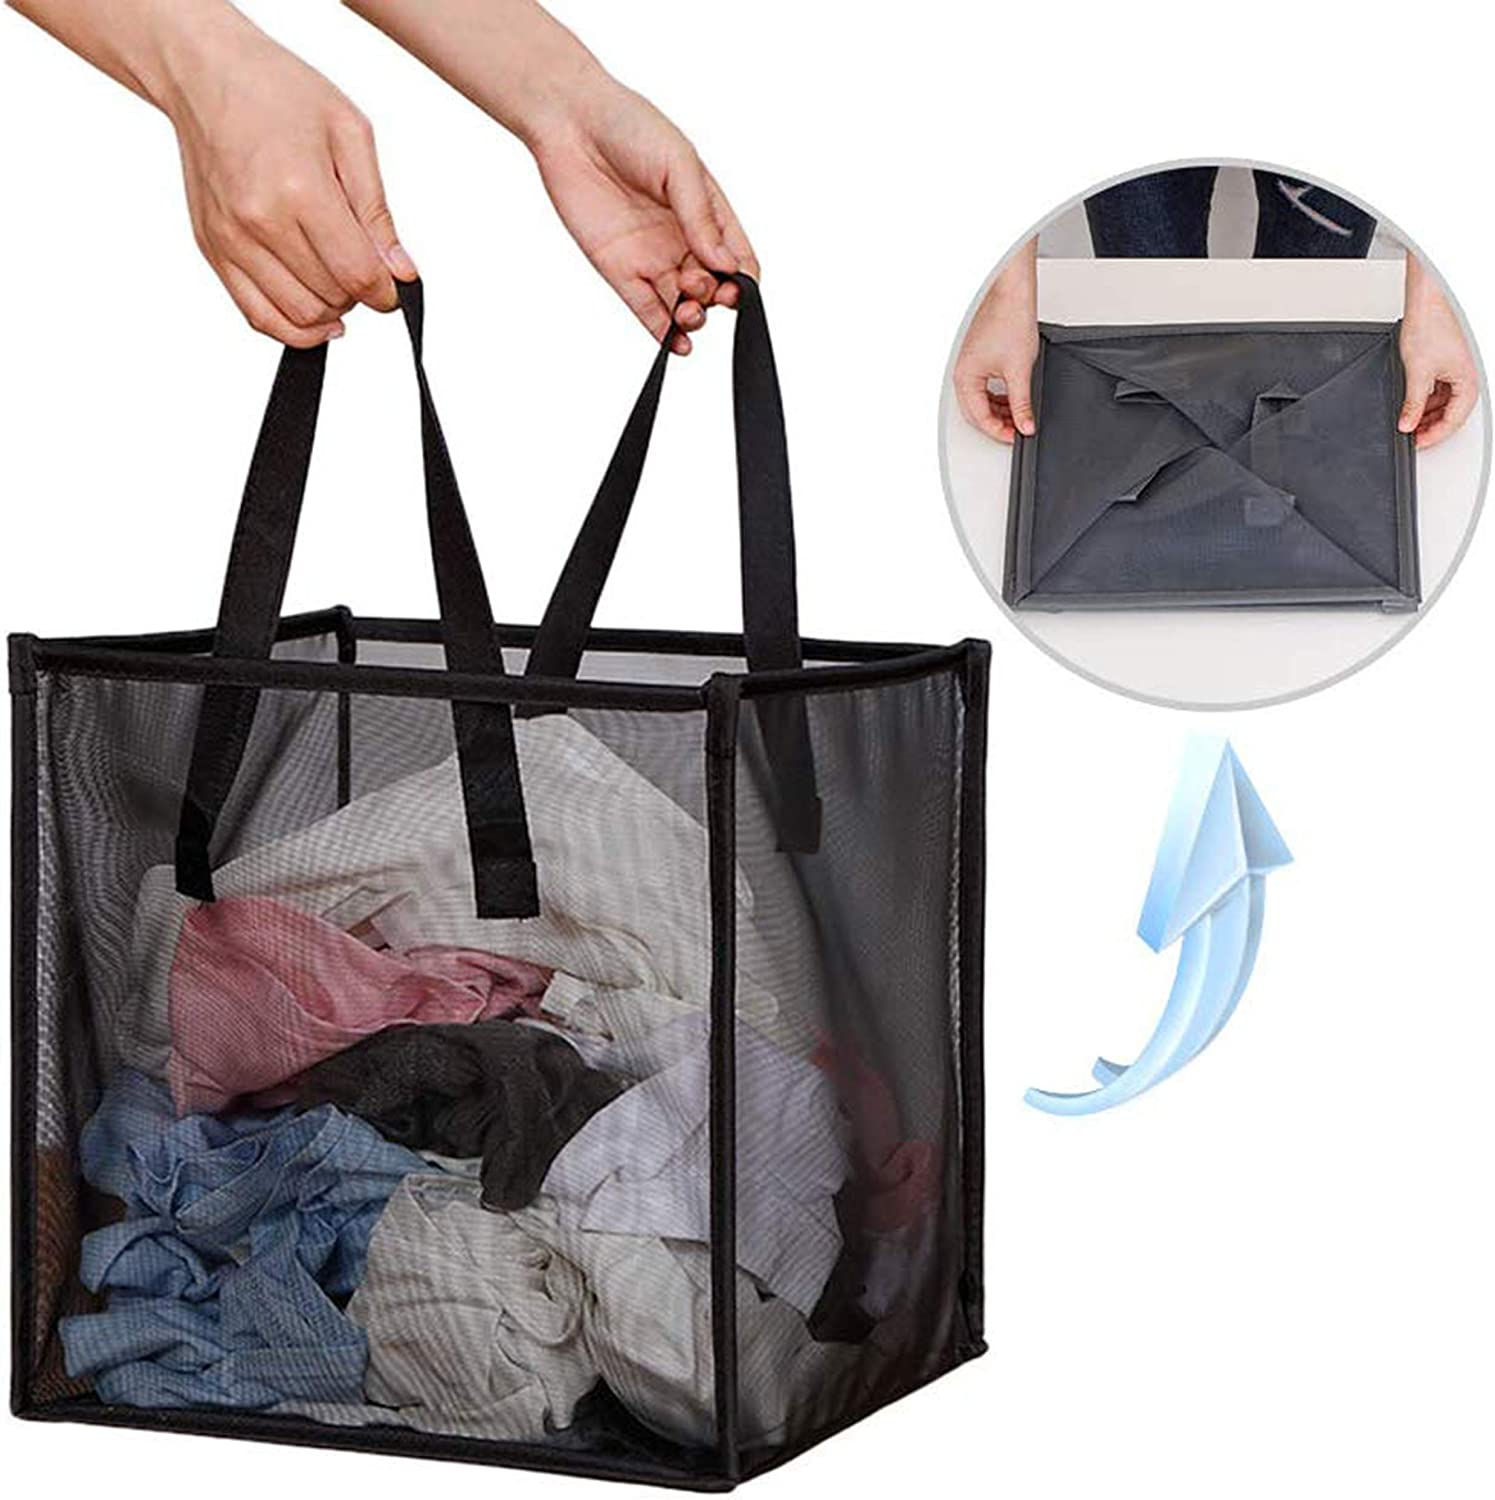 Mesh Popup Laundry Hamper with Handles,Portable Durable Collapsible Storage Easy Open. Folding Pop-Up Clothes Hampers Basket Foldable Great for The Kids Room College Dorm or Travel